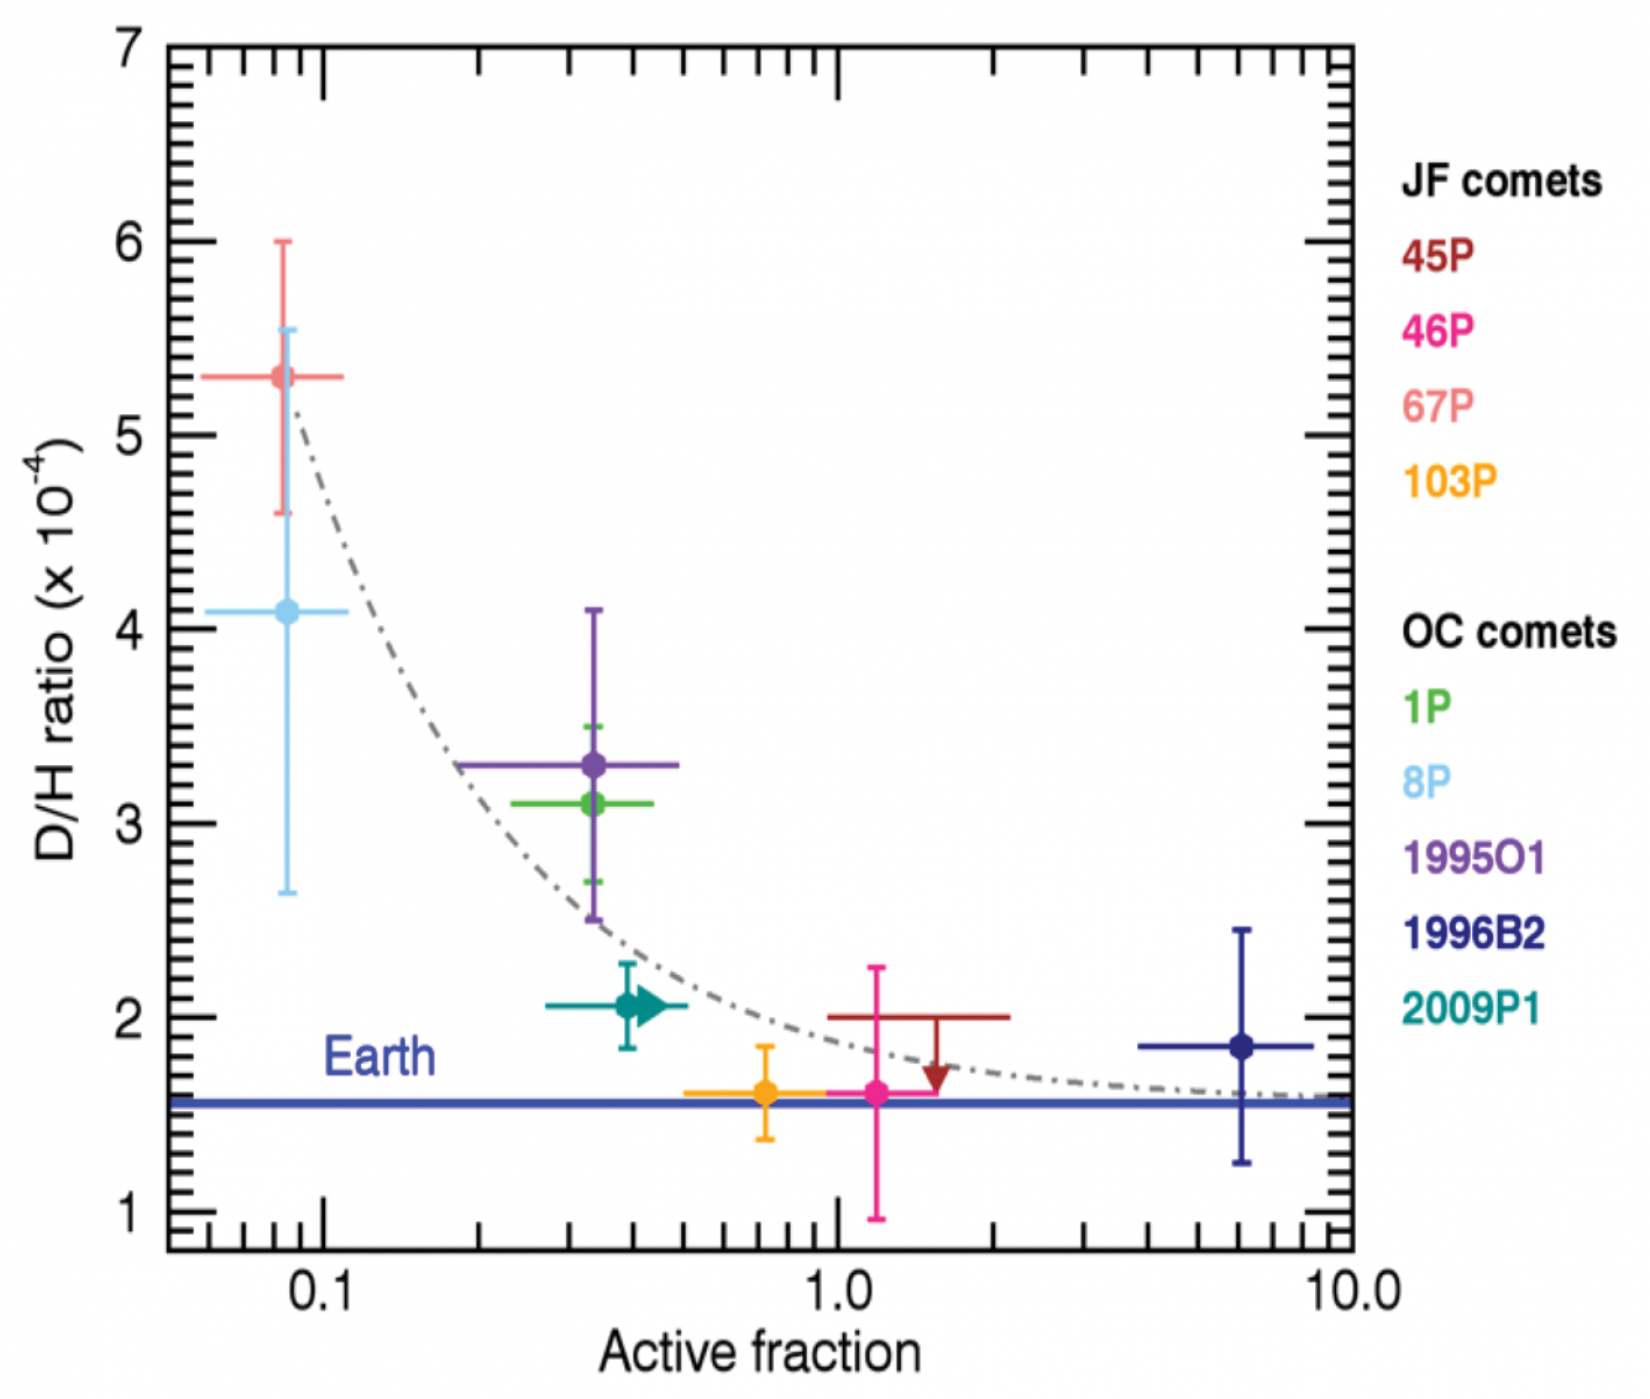 D/H ratio in cometary water as a function of the active fraction